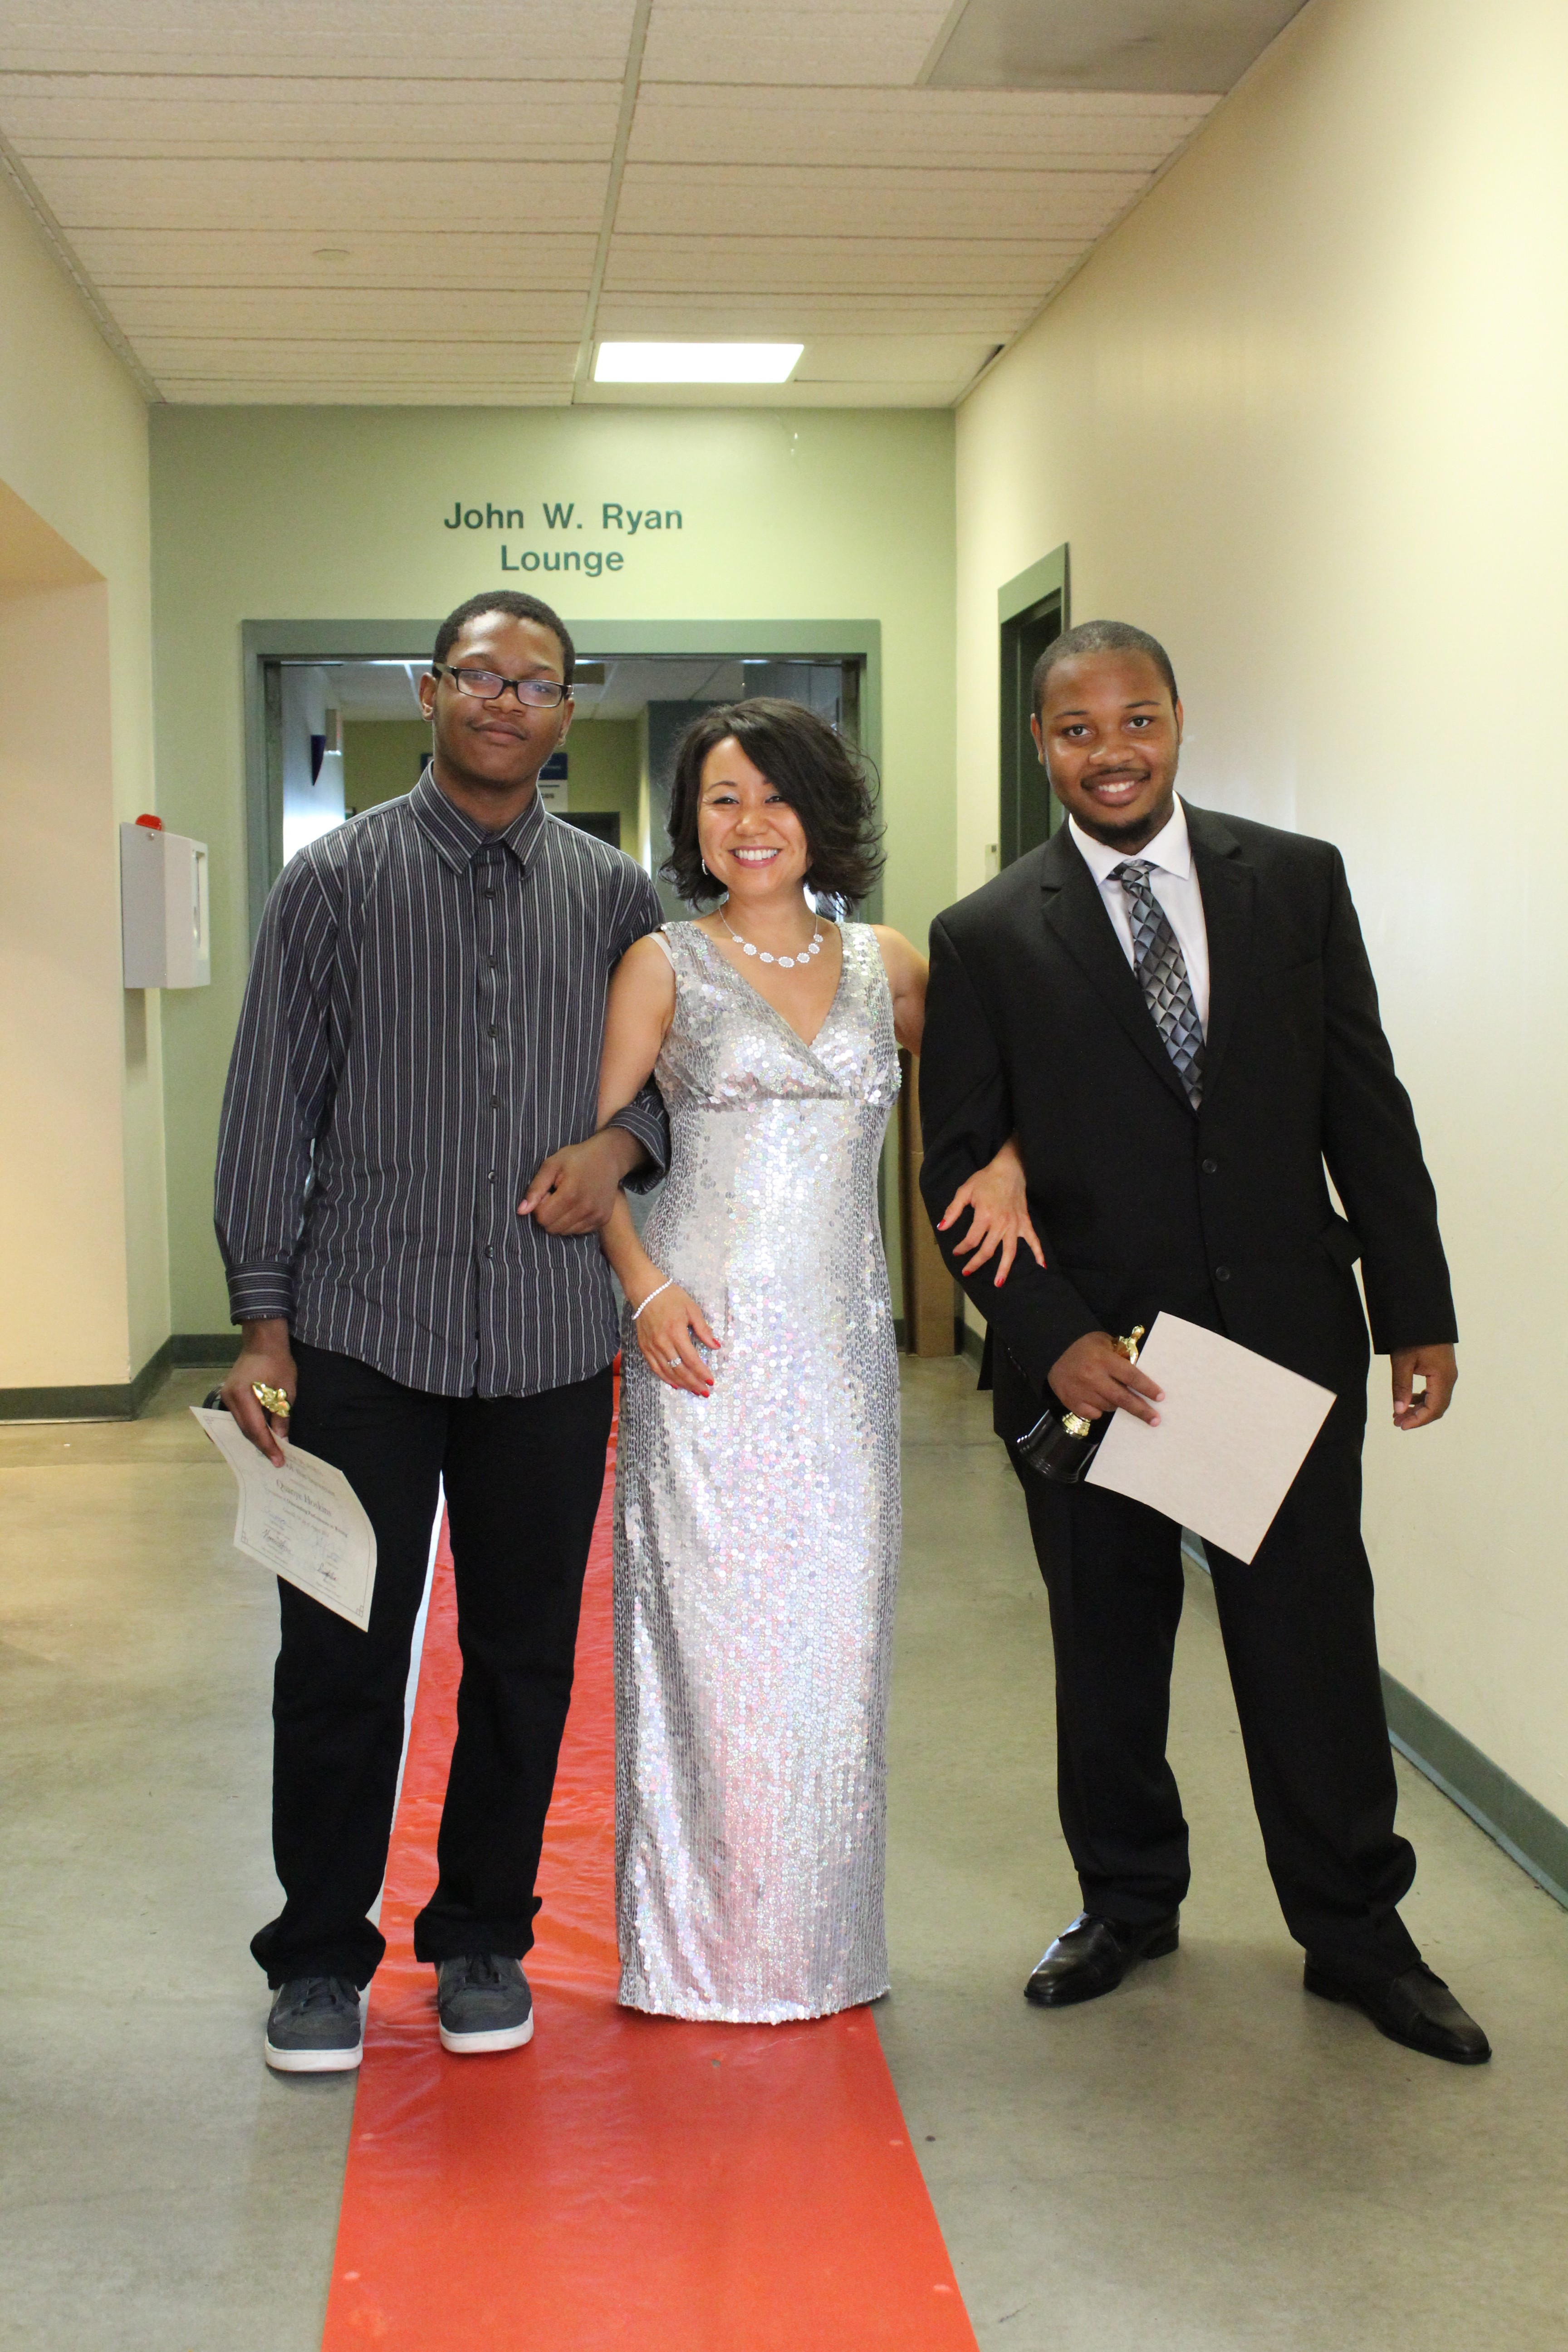 Merissa made a surprise entrance with her sparkling silver dress! She posed with her Urban Scholars students.